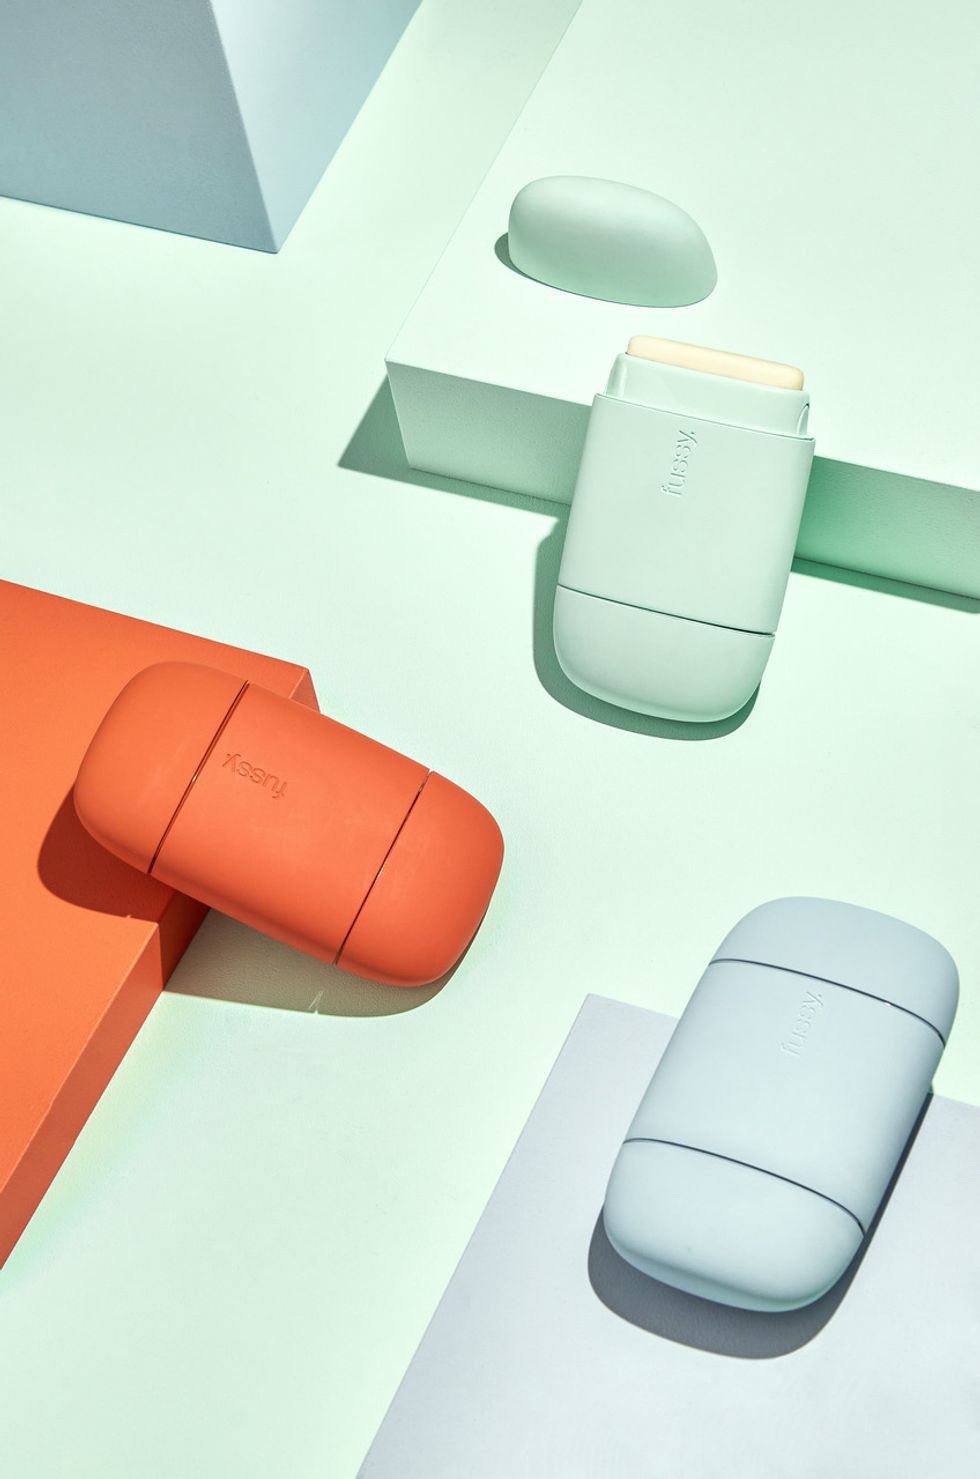 Finally, a climate cool deodorant that isn't dull-looking!